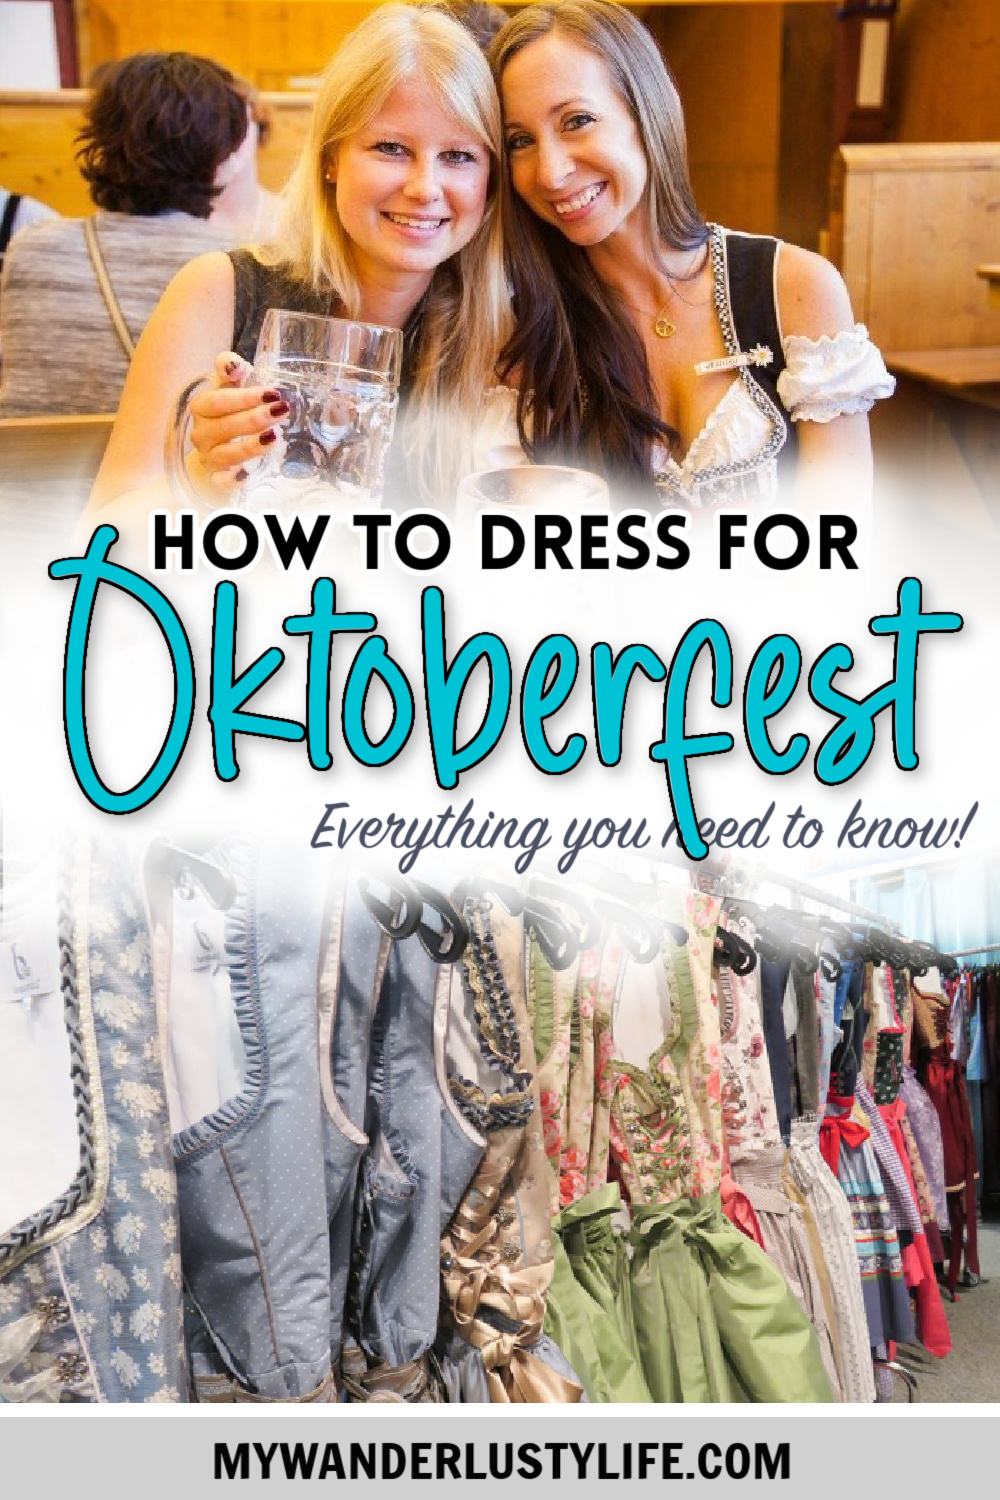 How to dress for Oktoberfest, a Complete and Honest Oktoberfest Packing Guide for dirndls | What to wear to Oktoberfest in Munich, Germany #oktoberfest #dirndl #munich #germany #festival #beerfestival #lederhosen